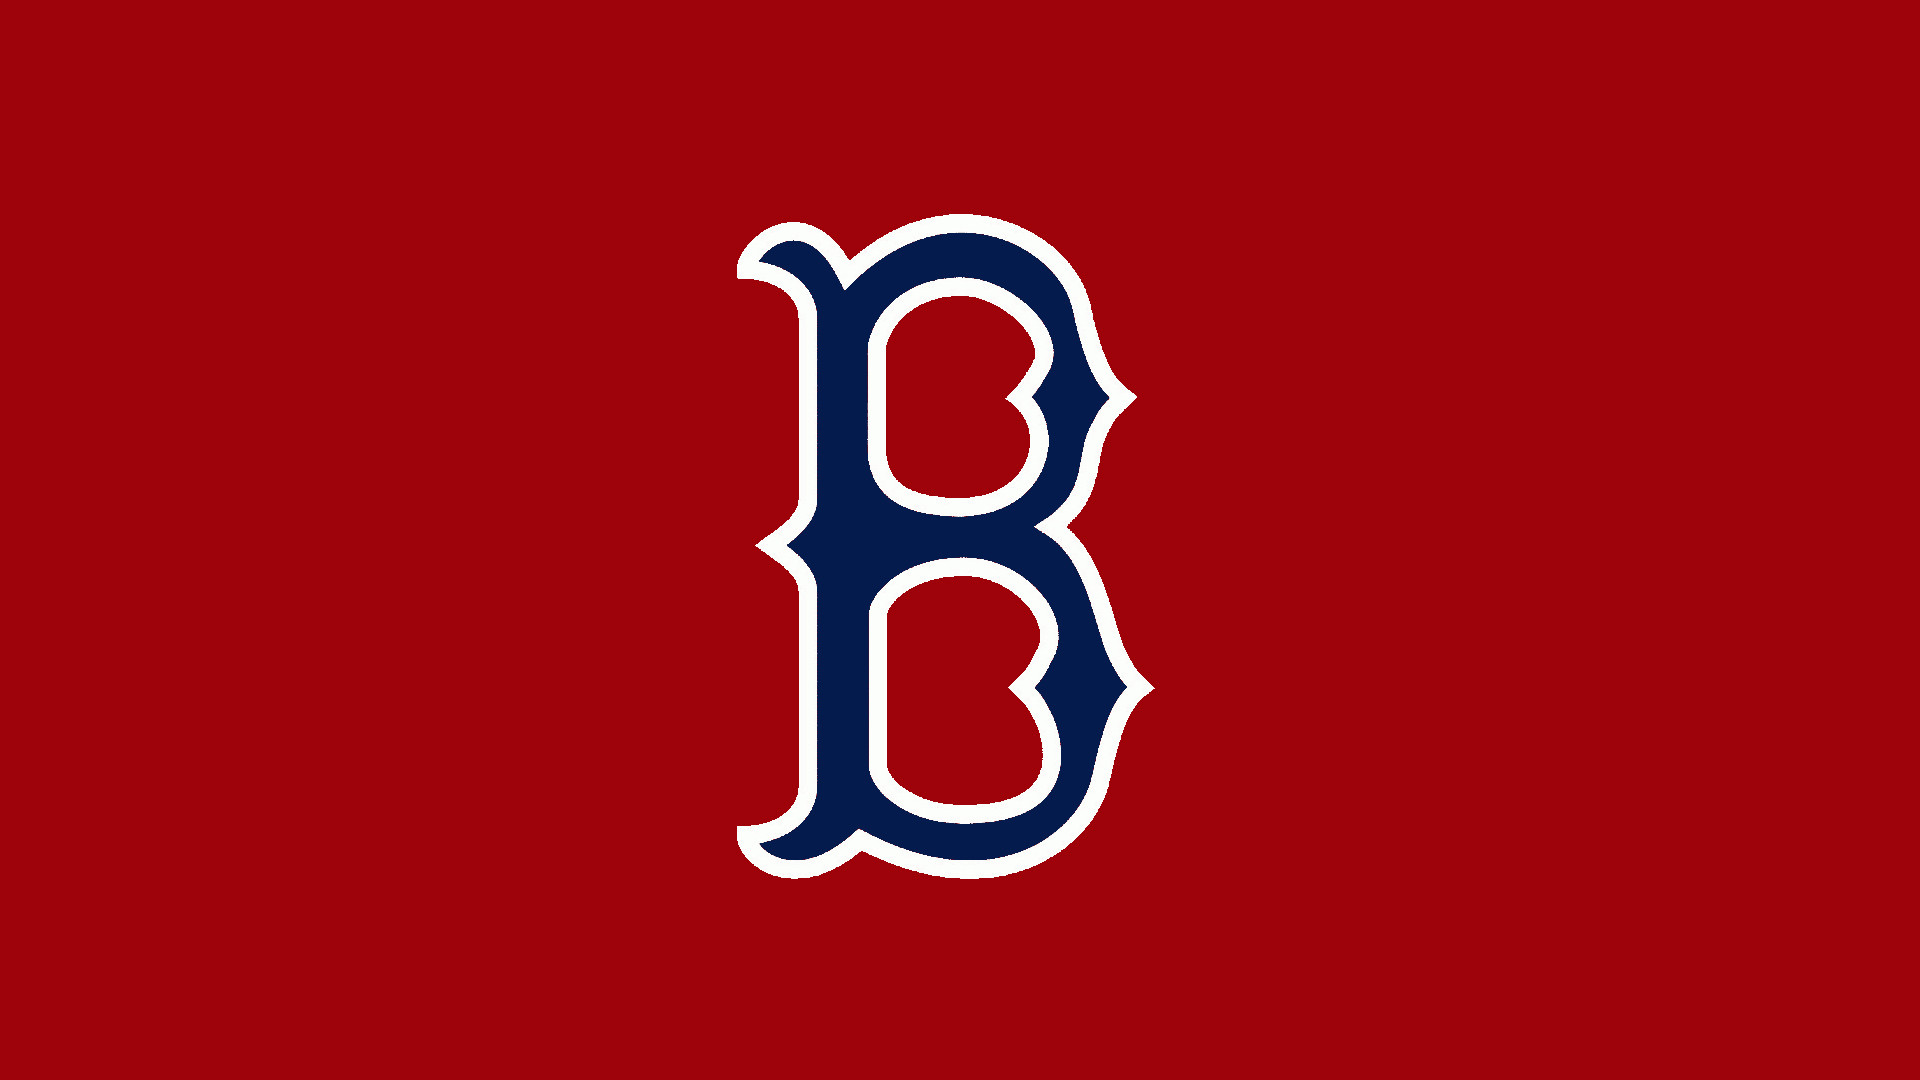 1920x1080 Boston Red Sox images Red Sox Wallpaper  HD wallpaper and  background photos